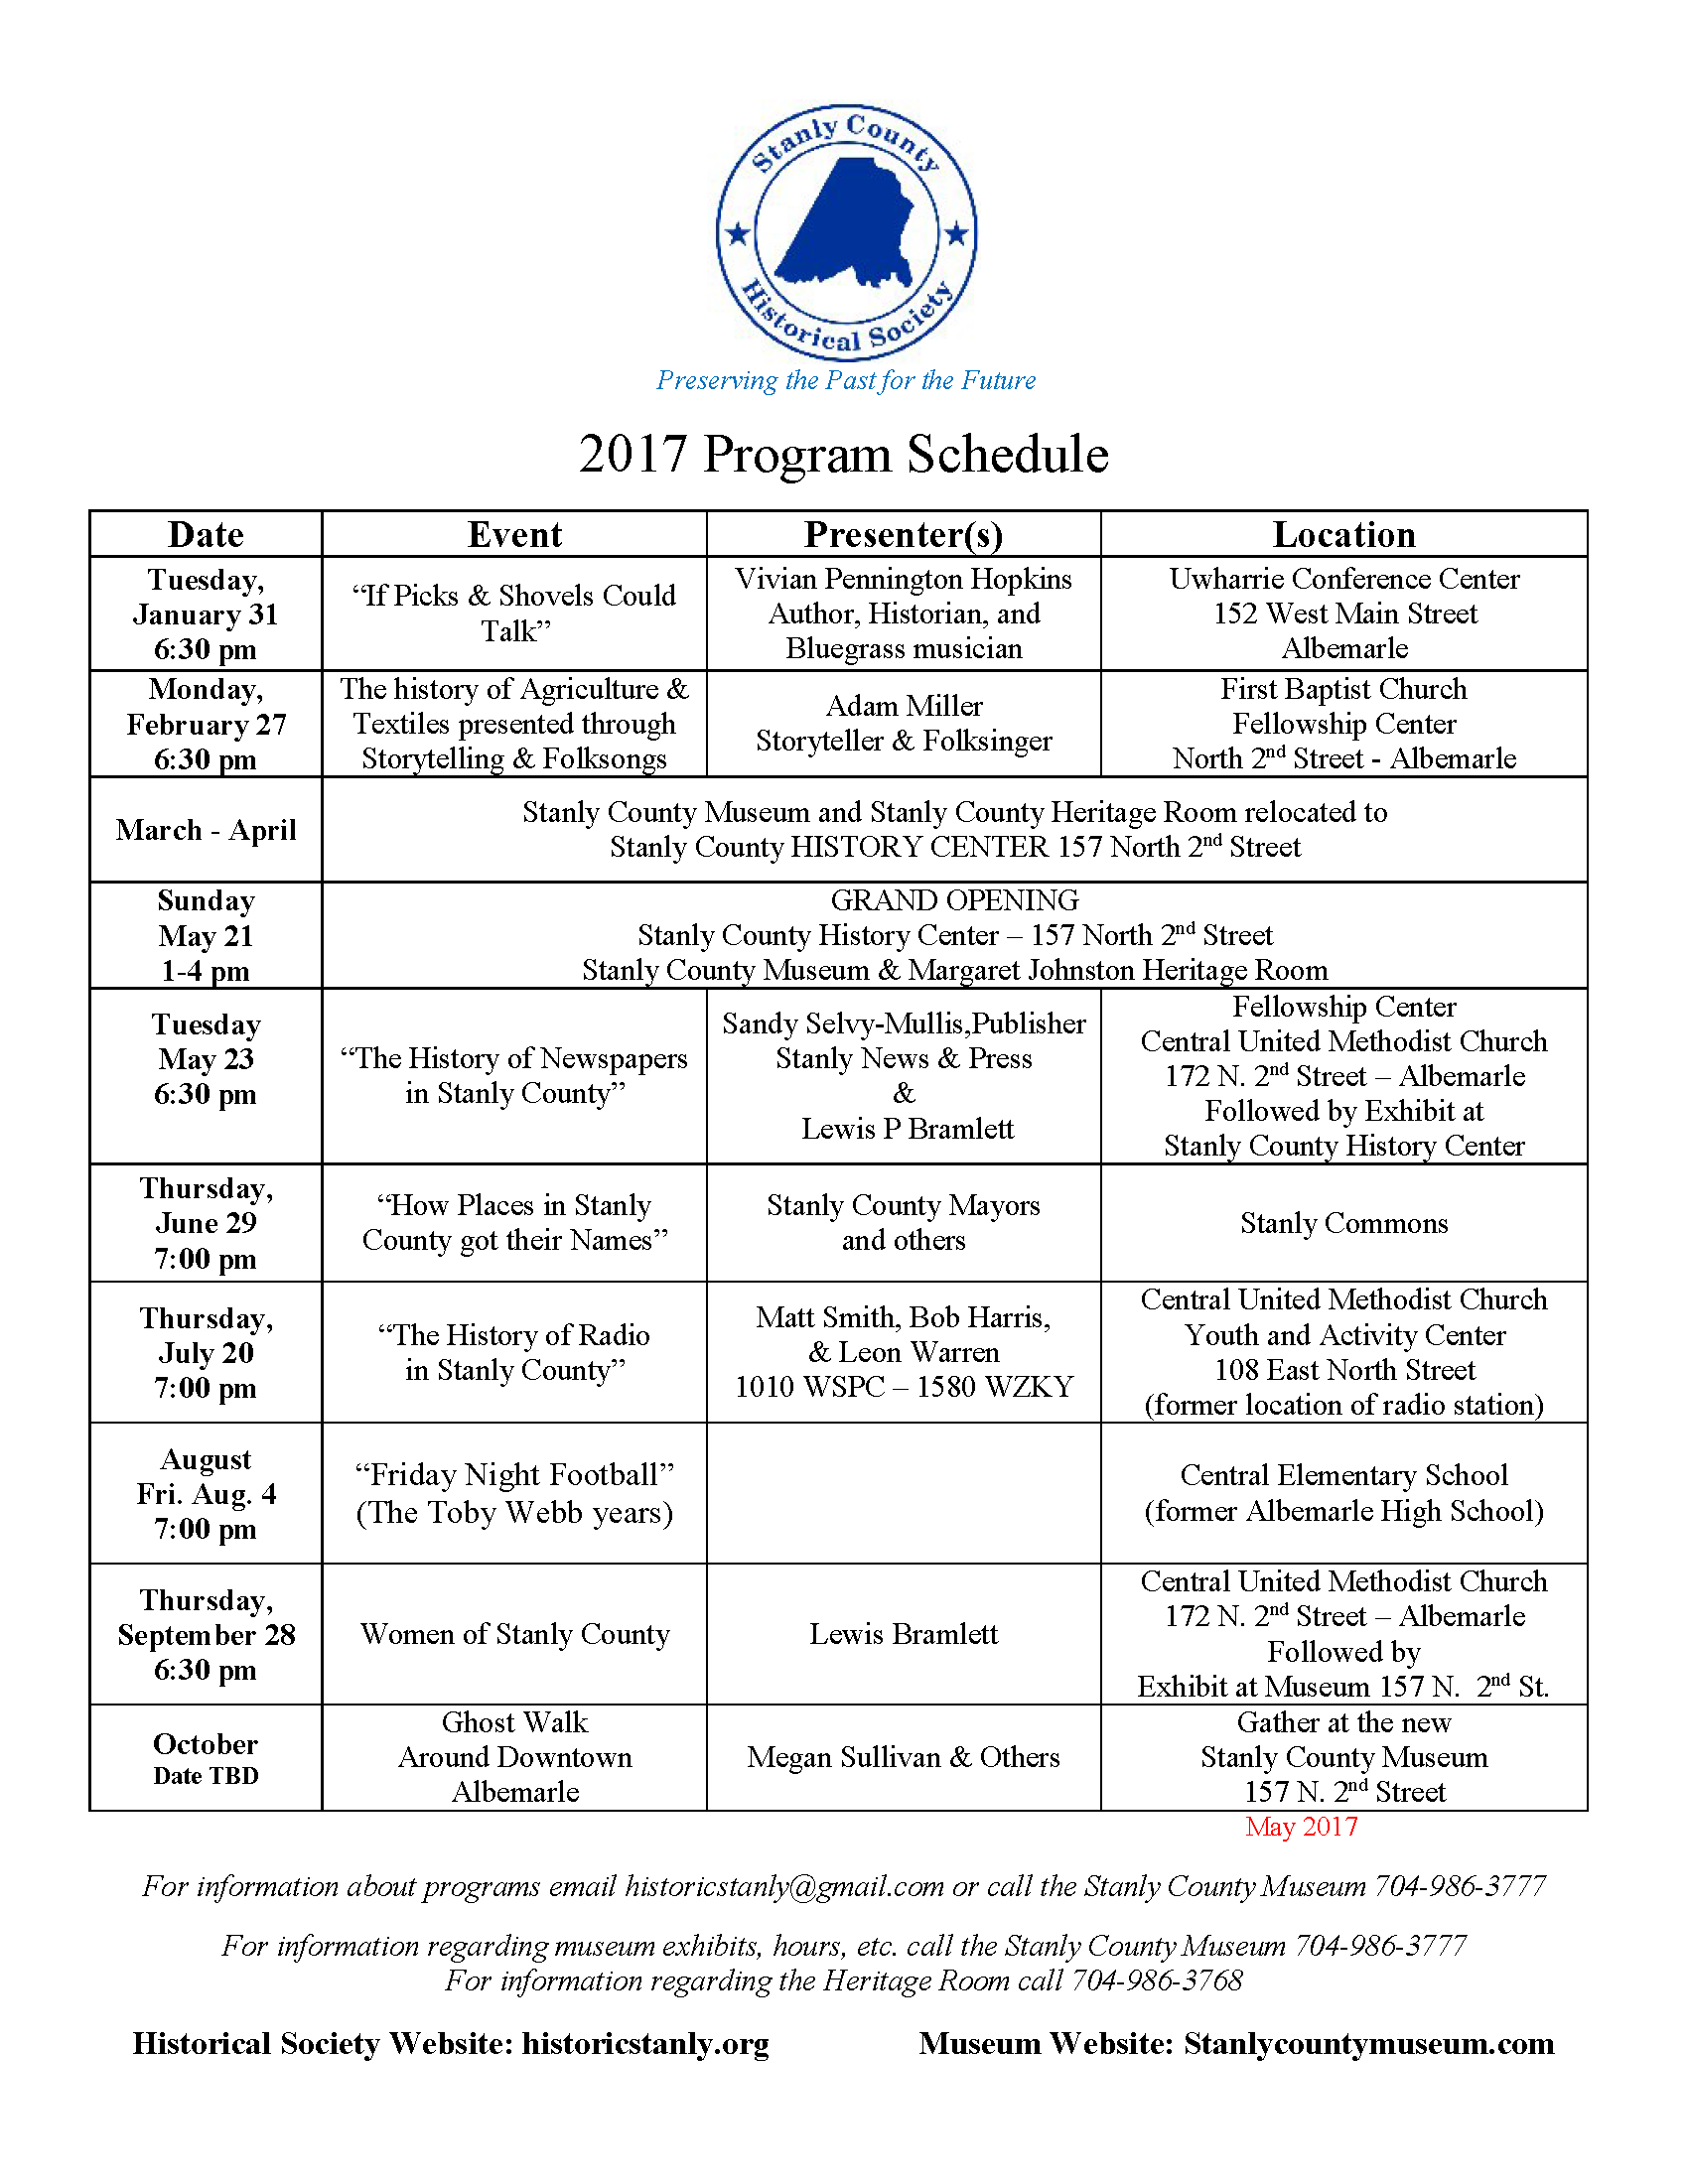 Check out our Programming Schedule for 2017!